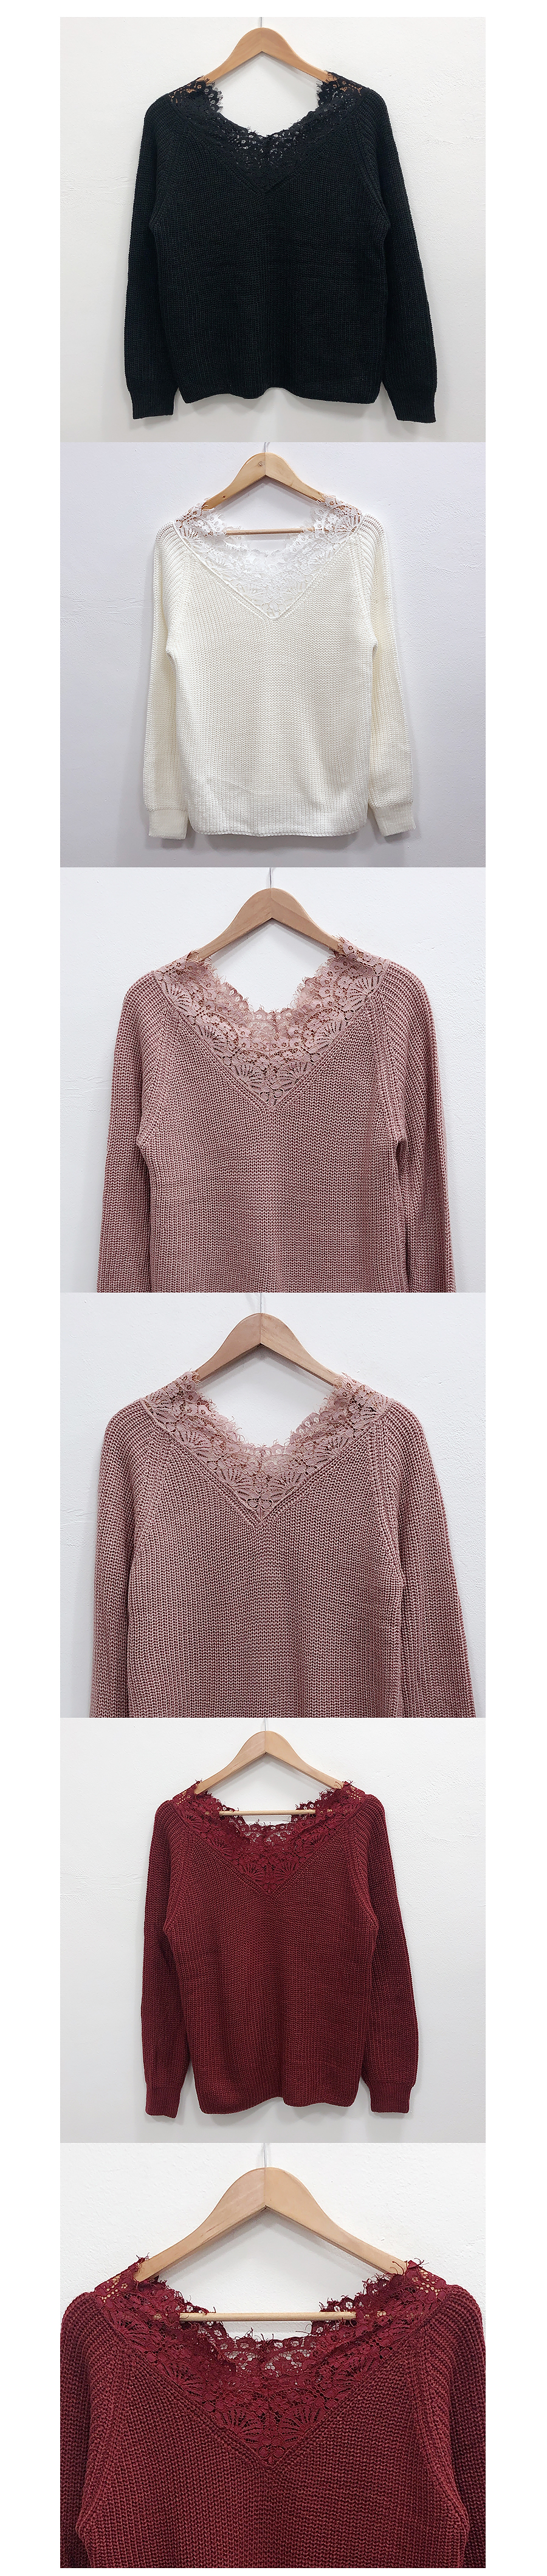 Innocent sexy lace knit